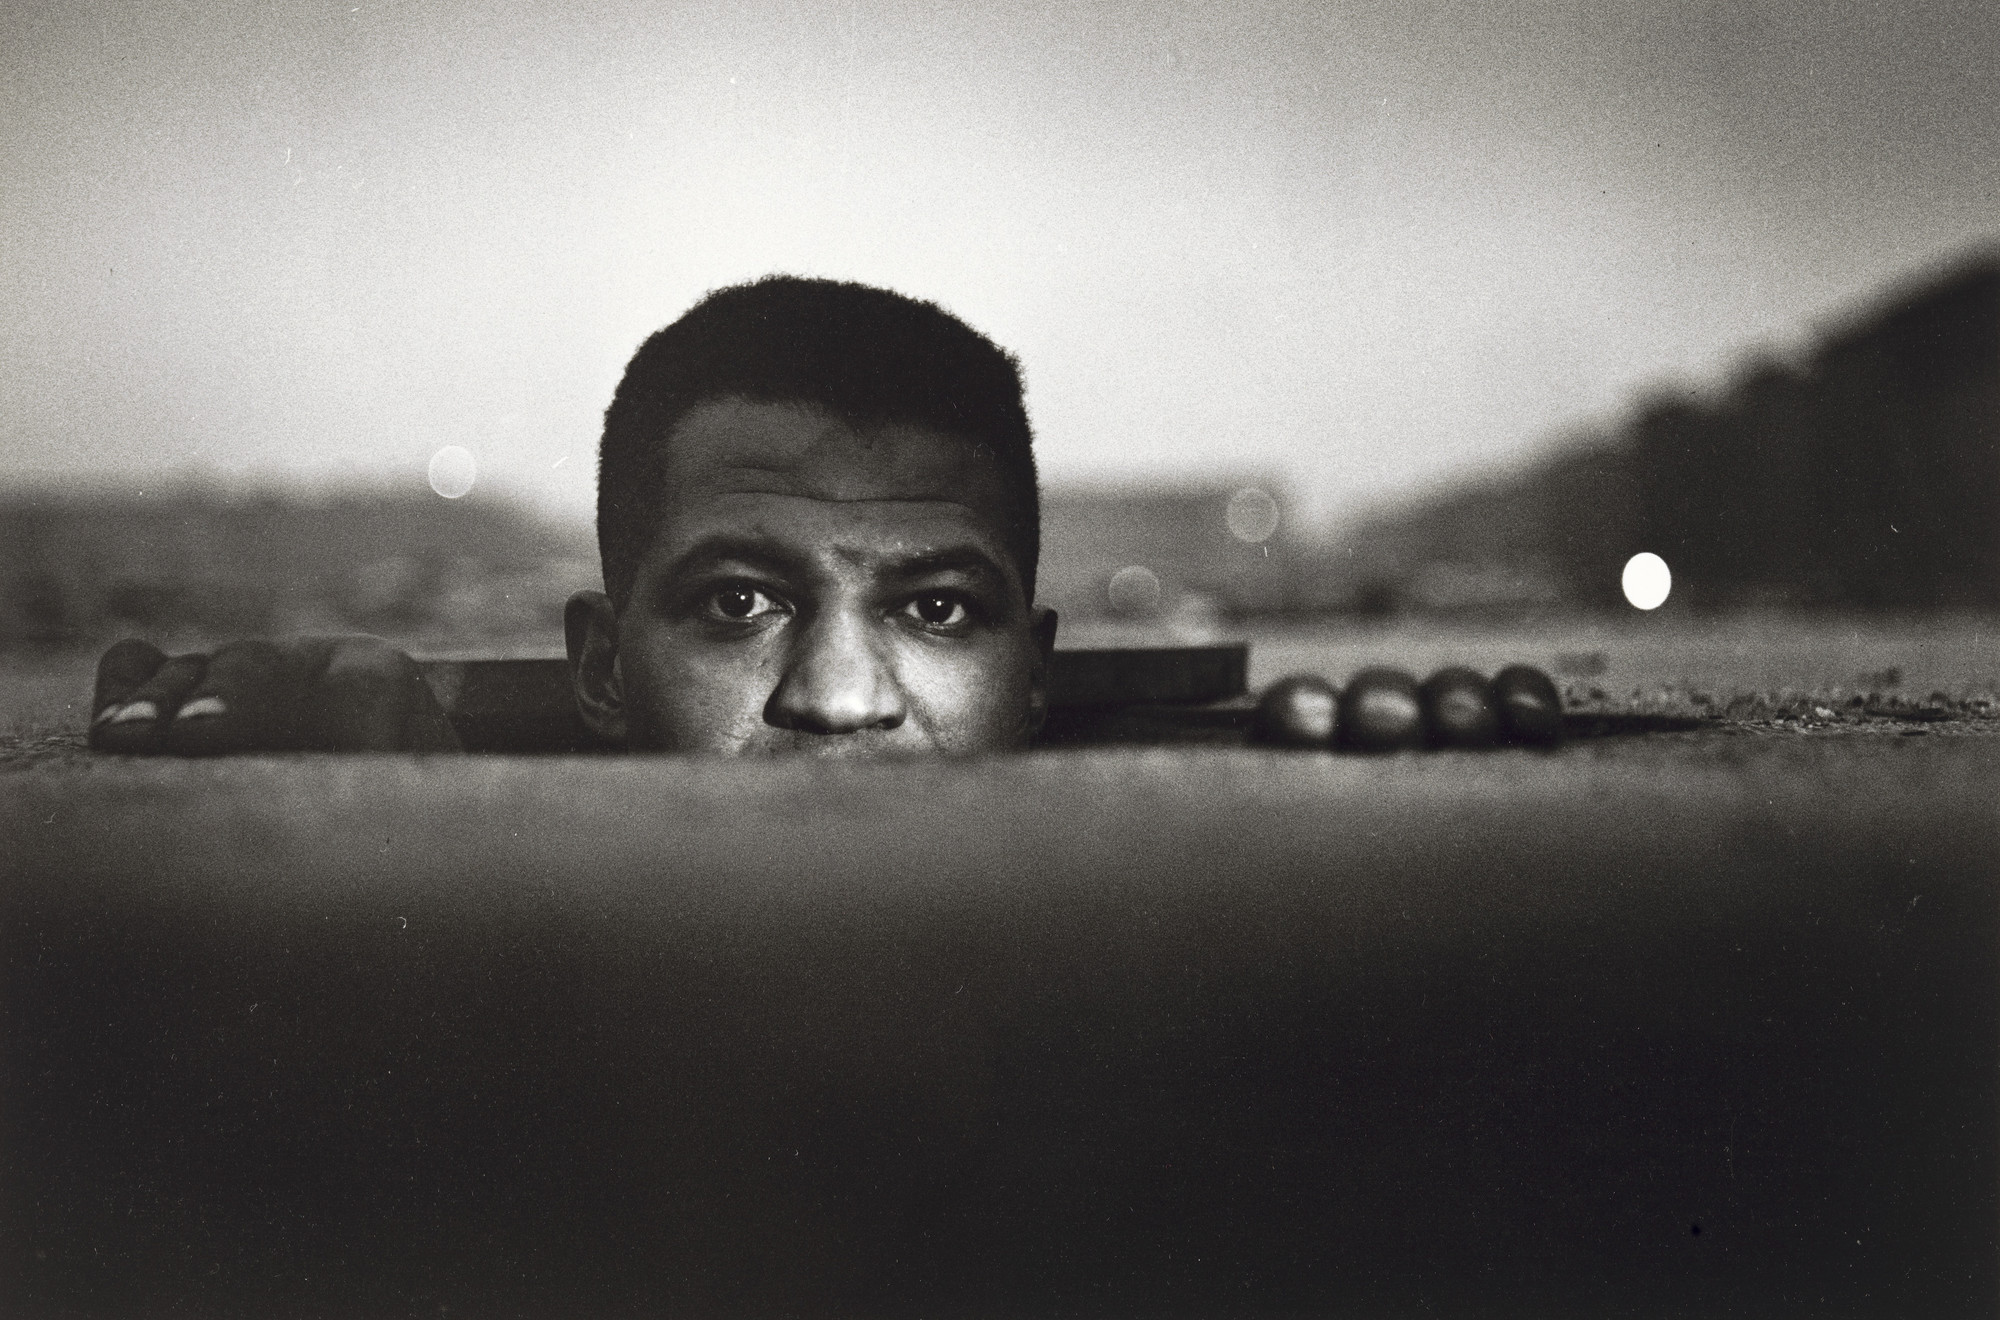 Gordon Parks. Emerging Man, Harlem, New York. 1952